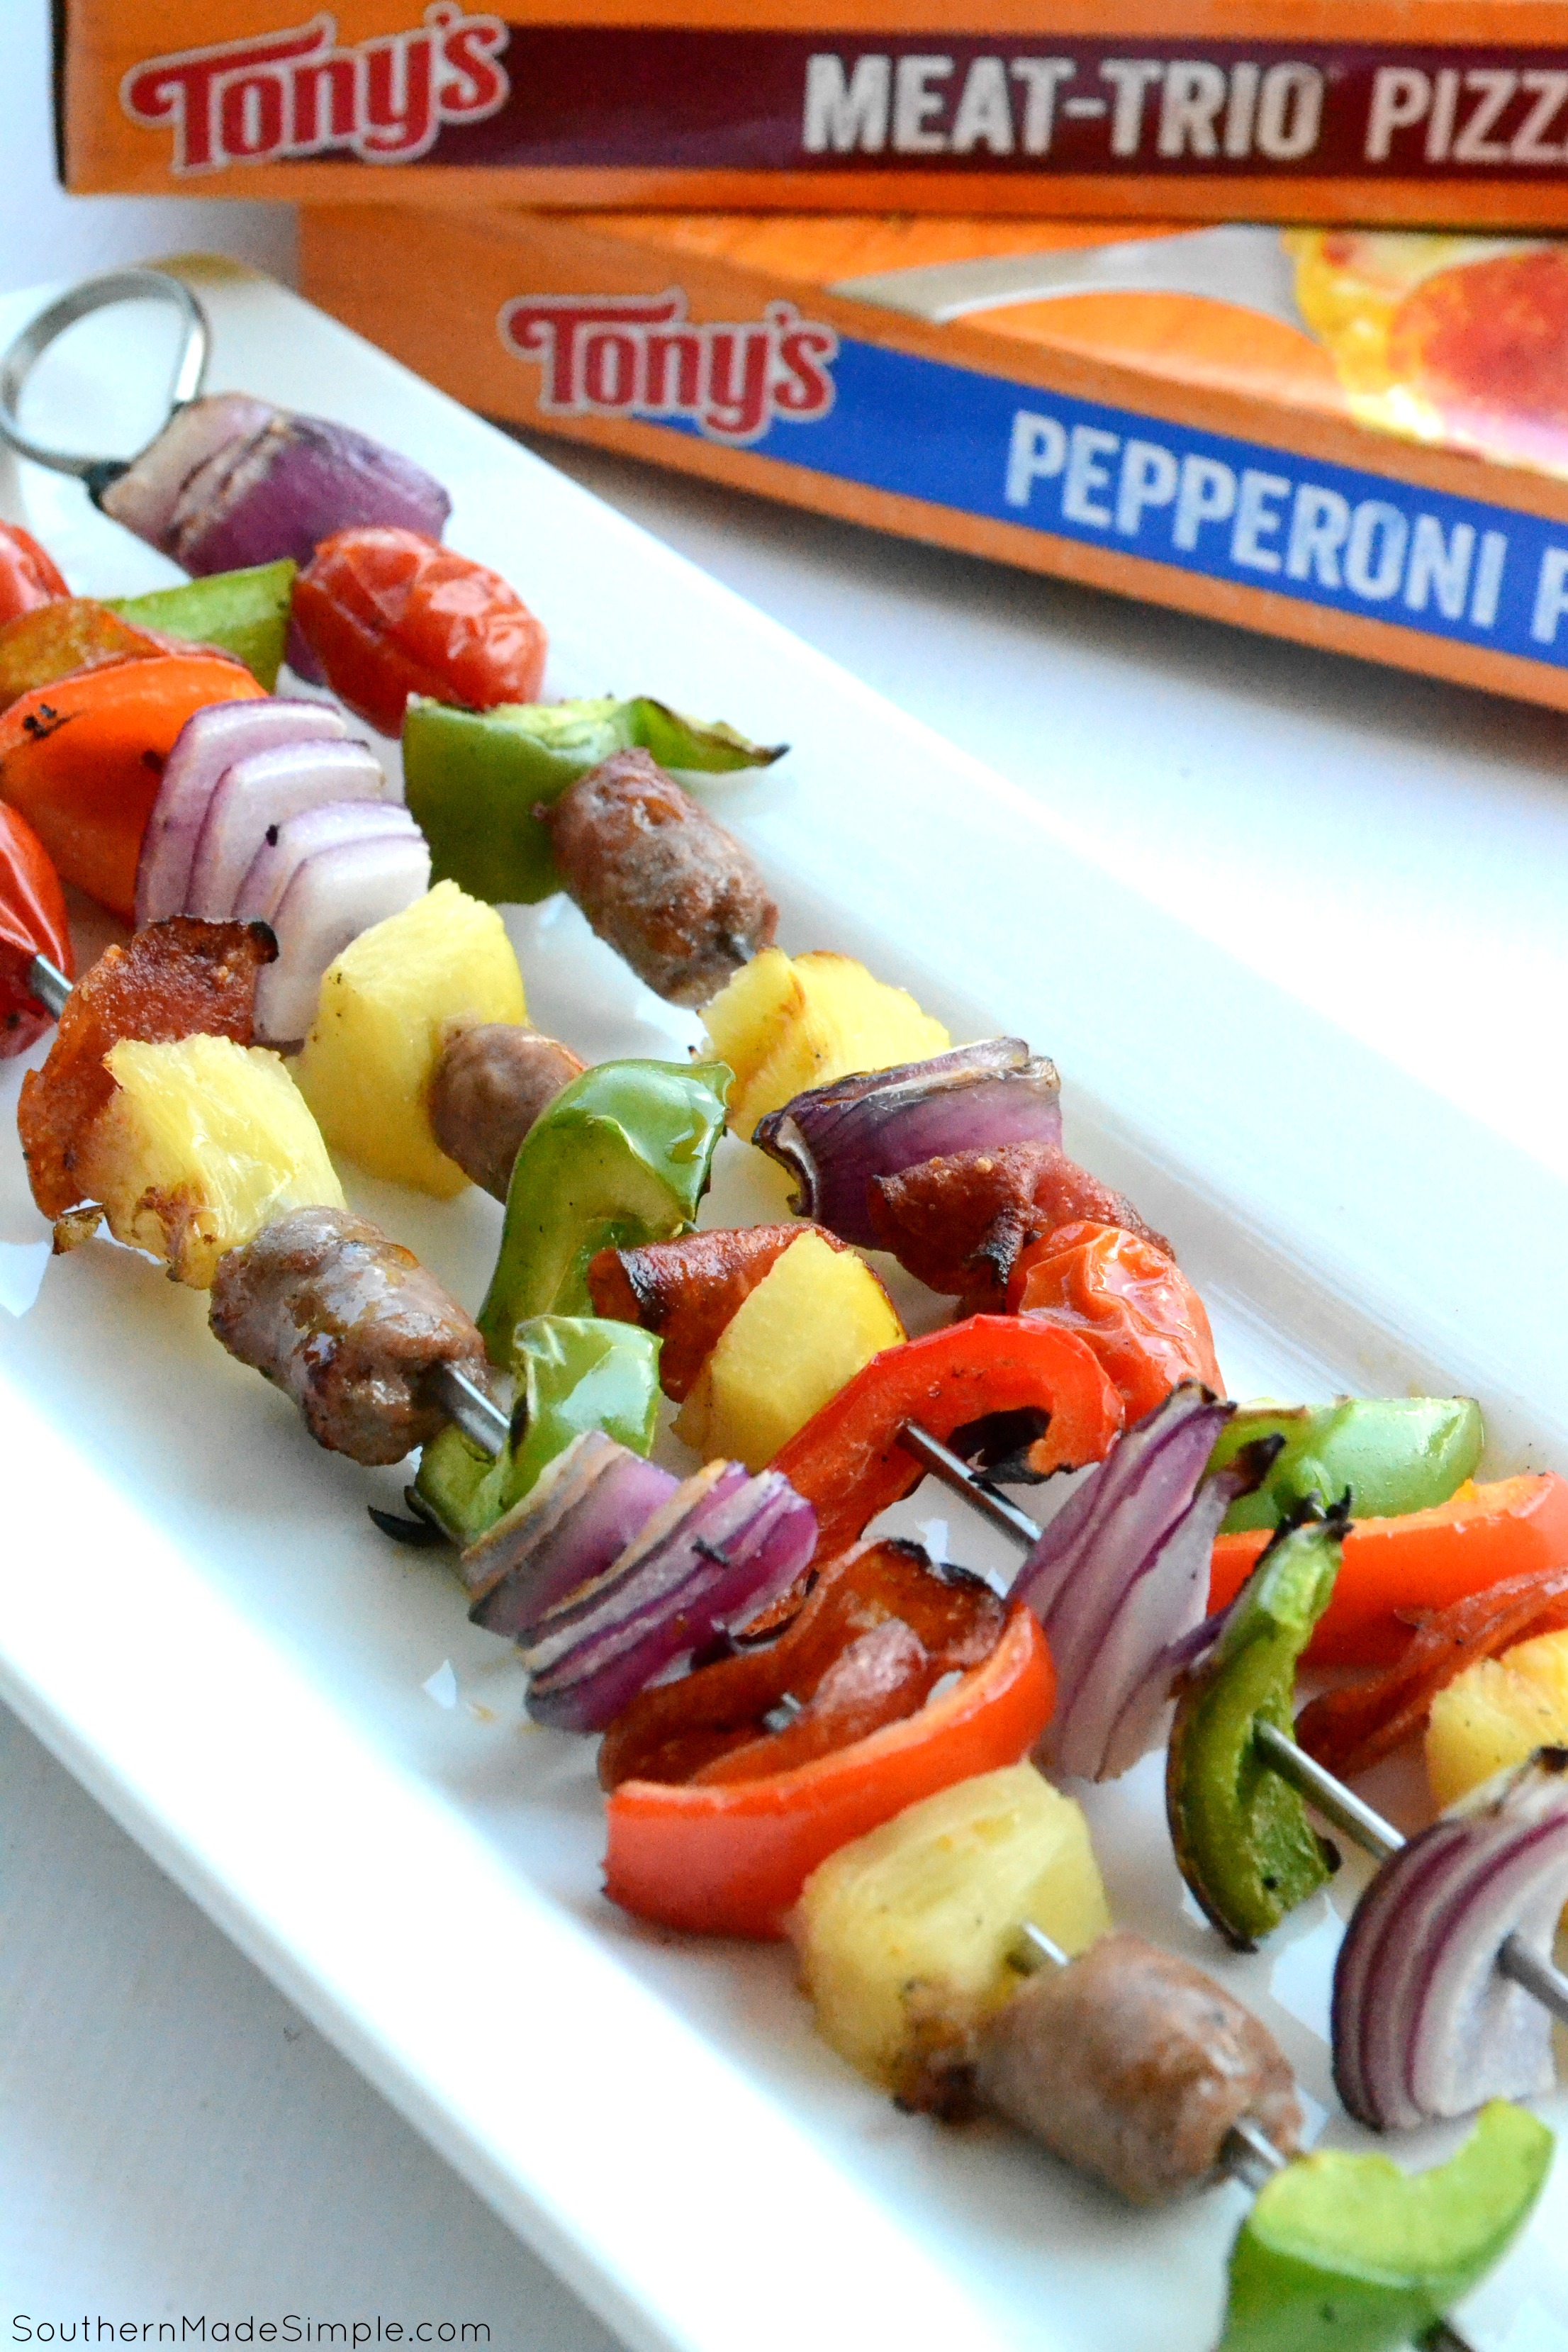 Gearing up for the big game? Grab a Tony's Pizza and pair it with these easy and delicious Pizza Kabobs and you've got a winning feast! #WinWithTonysPizza #Ad